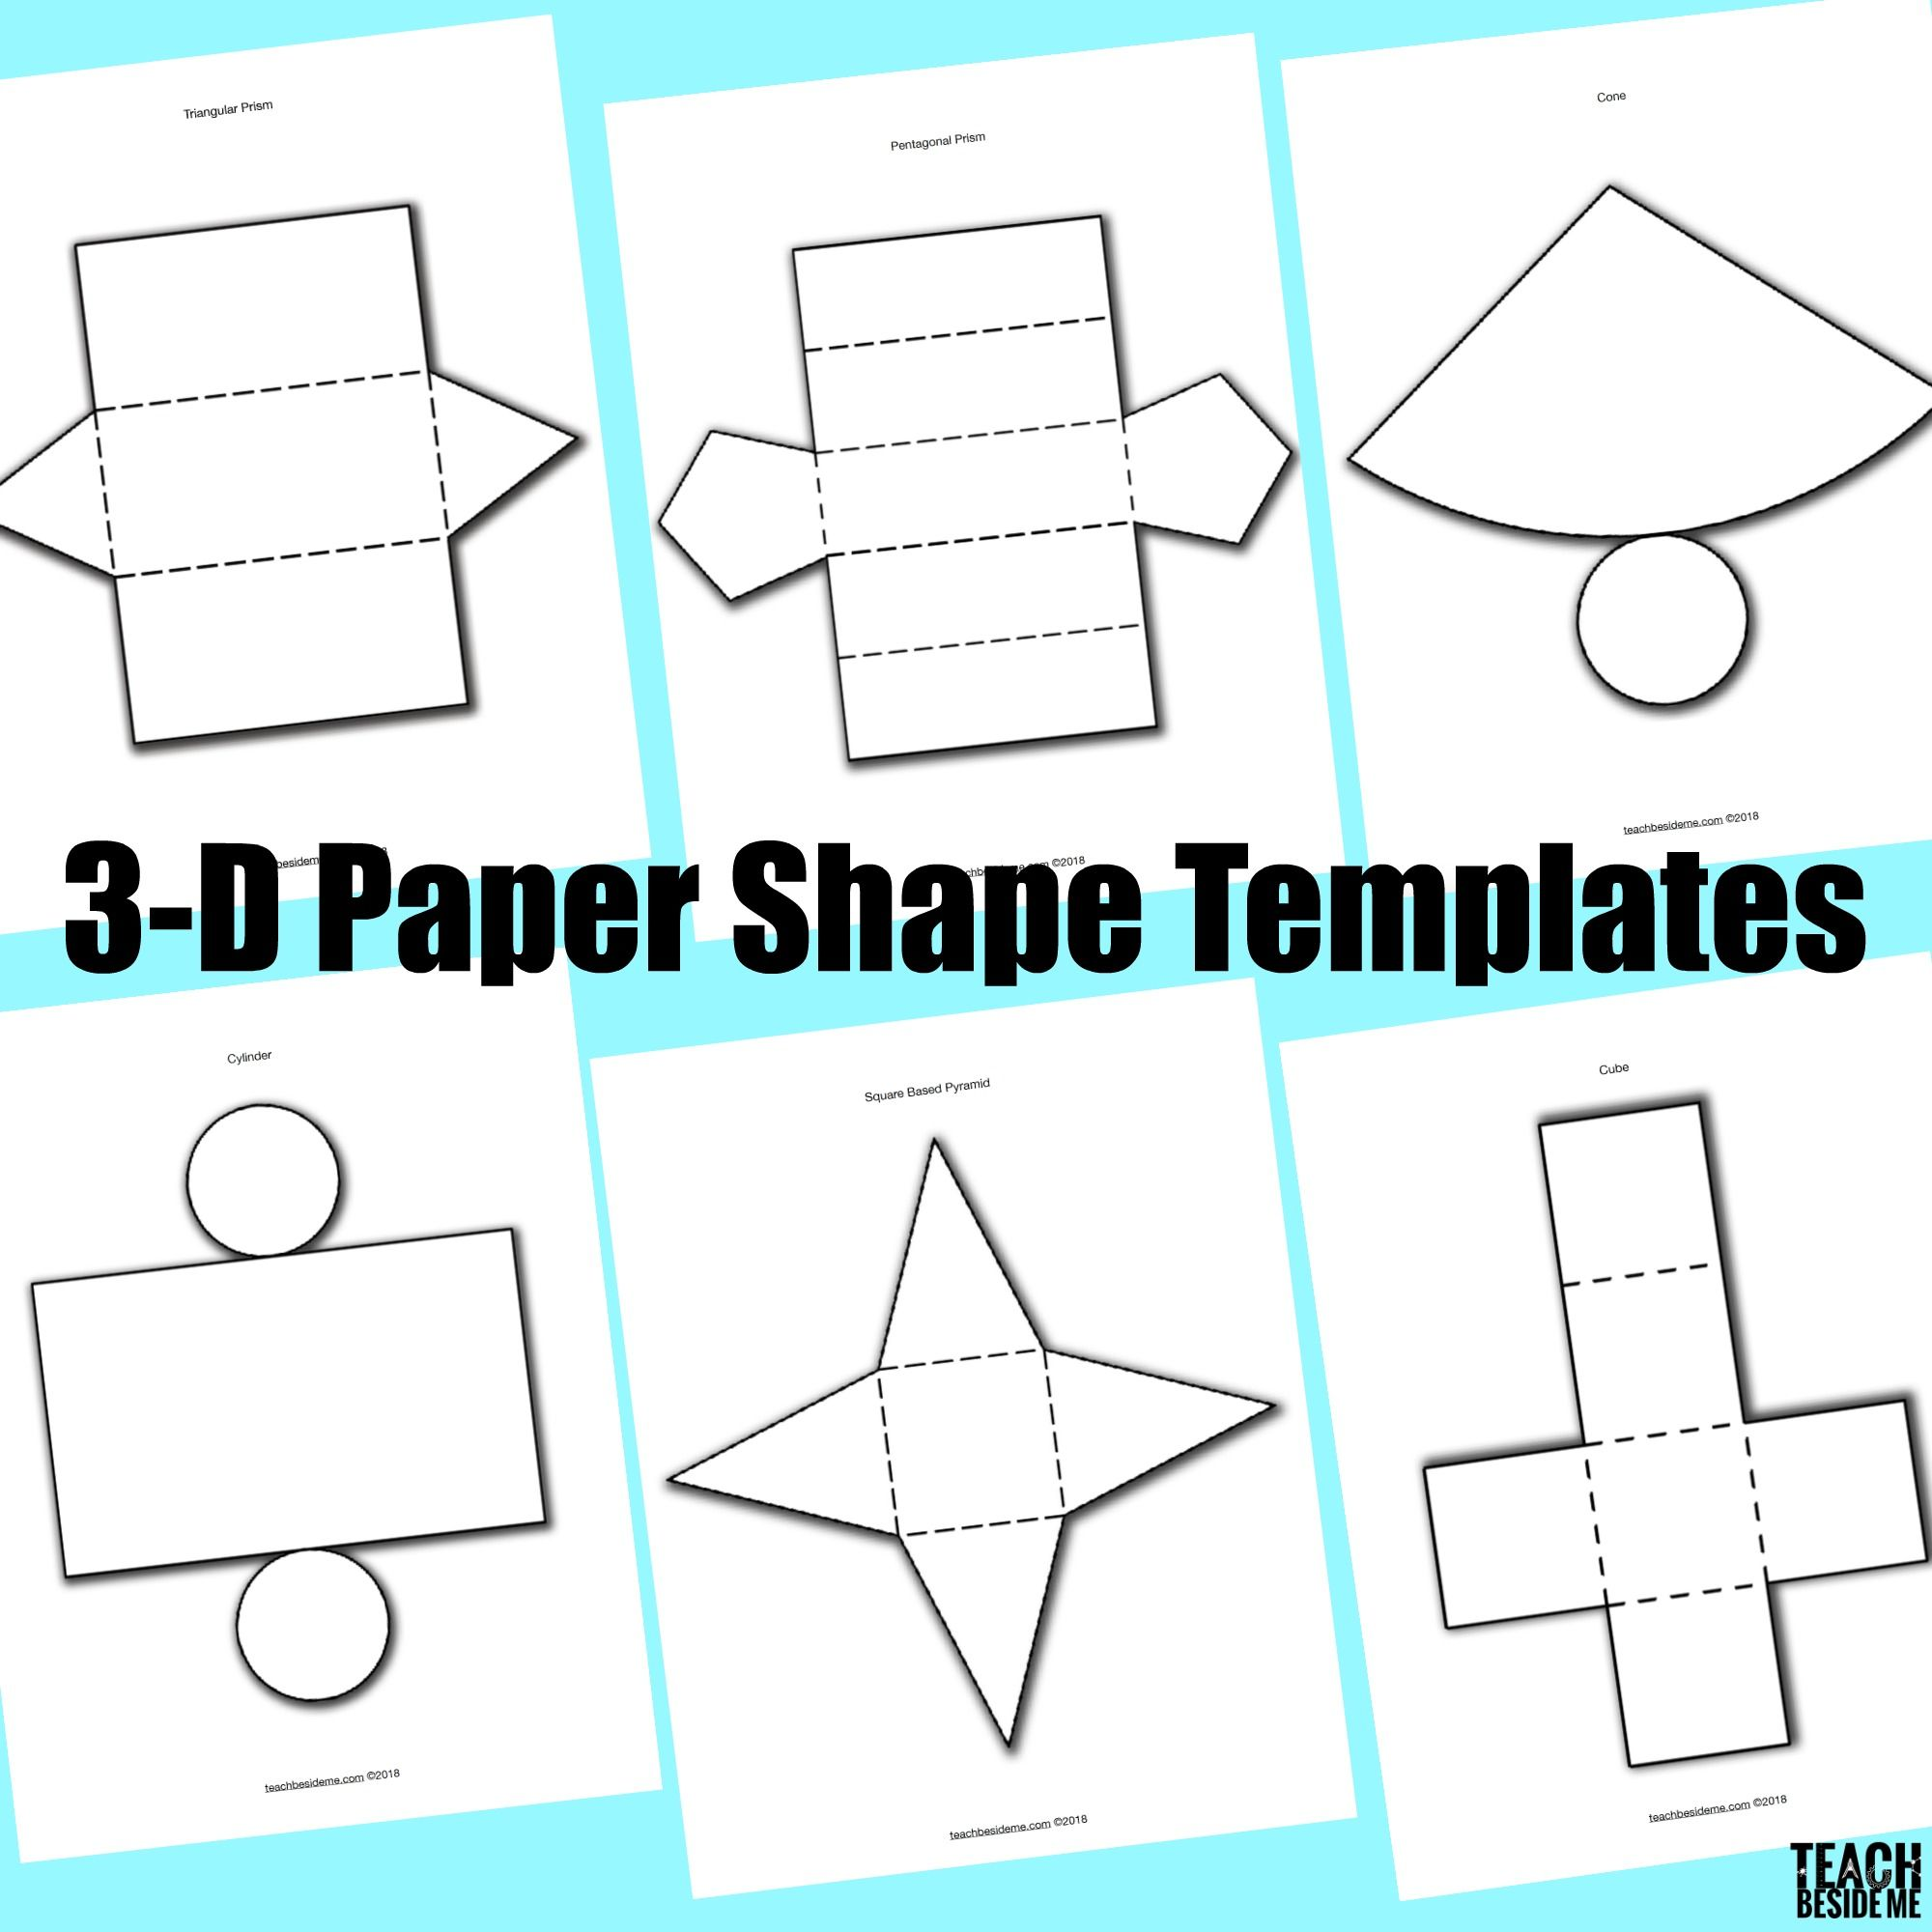 photo regarding Paper Cutout Templates identified as 3-D Paper Form Templates Math Condition templates, Paper